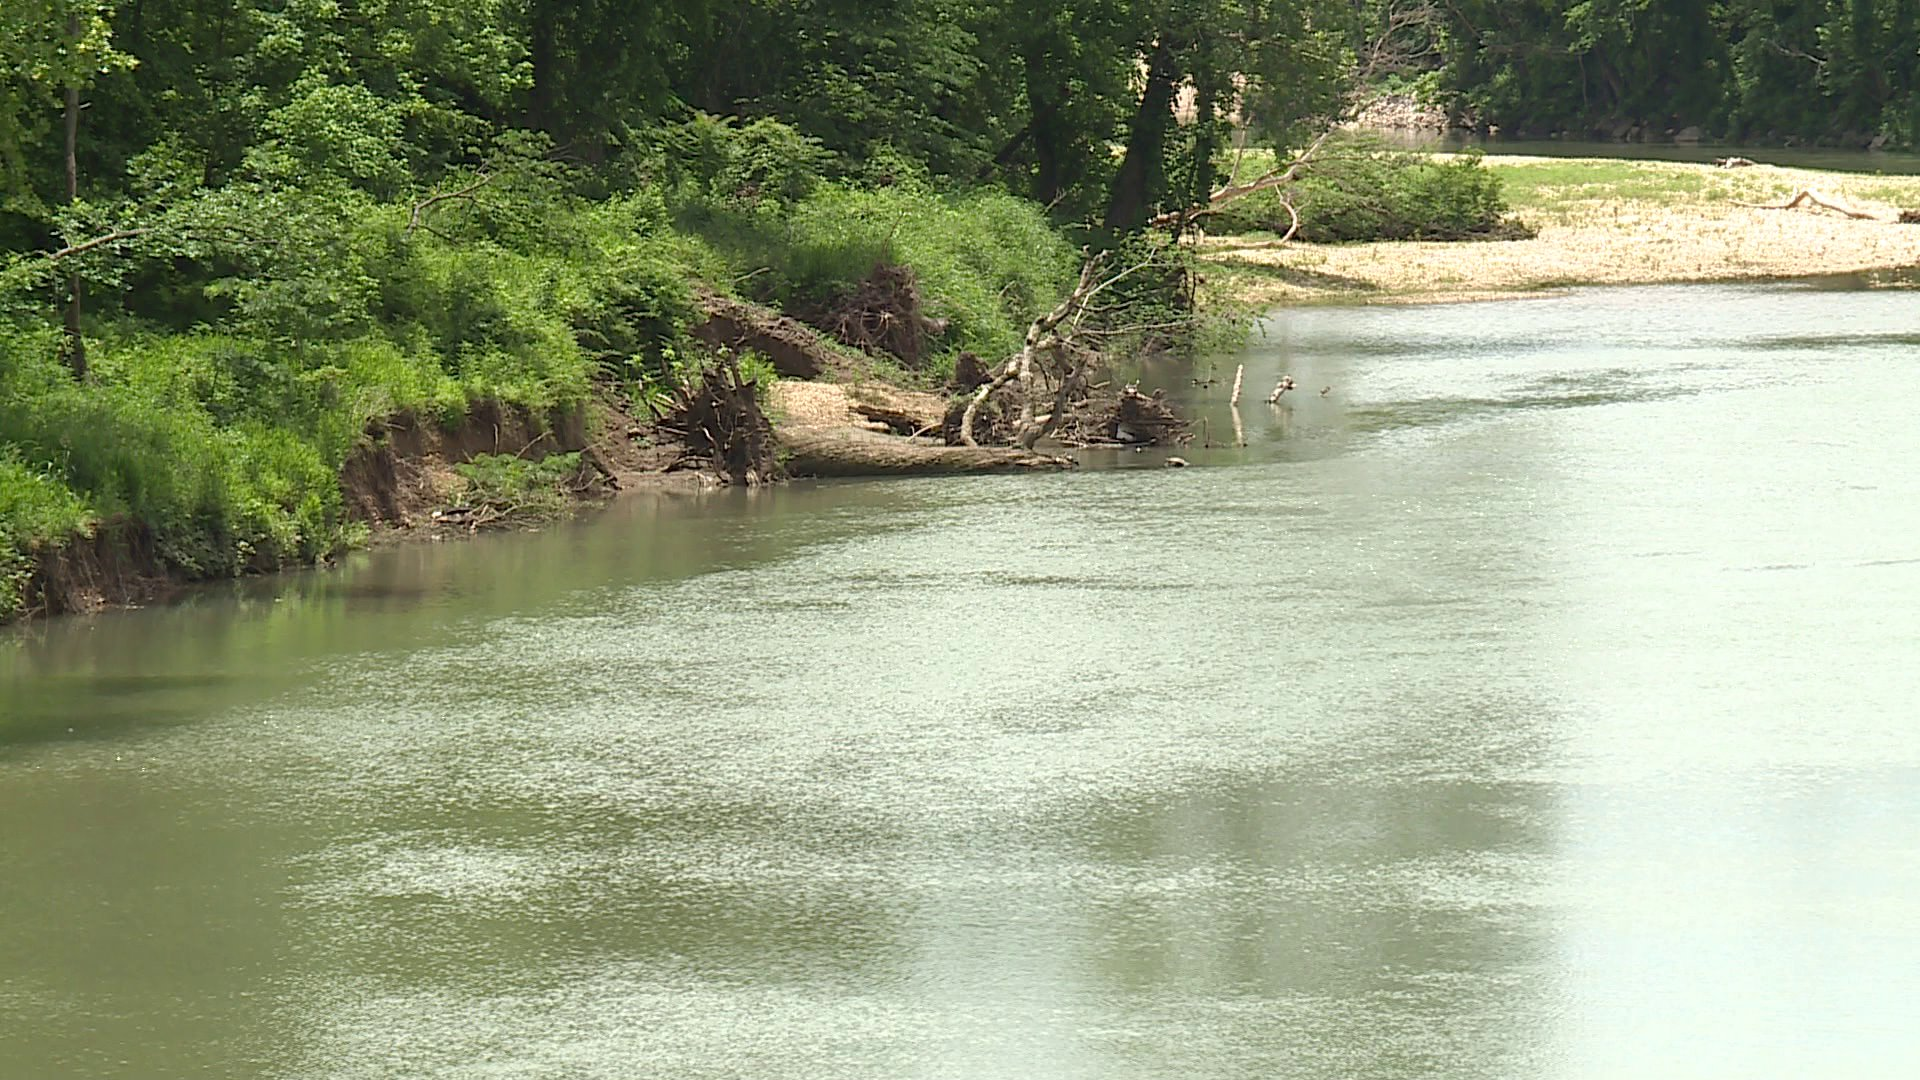 Arkansas Commission To Give $1.4M For Illinois River Cleanup